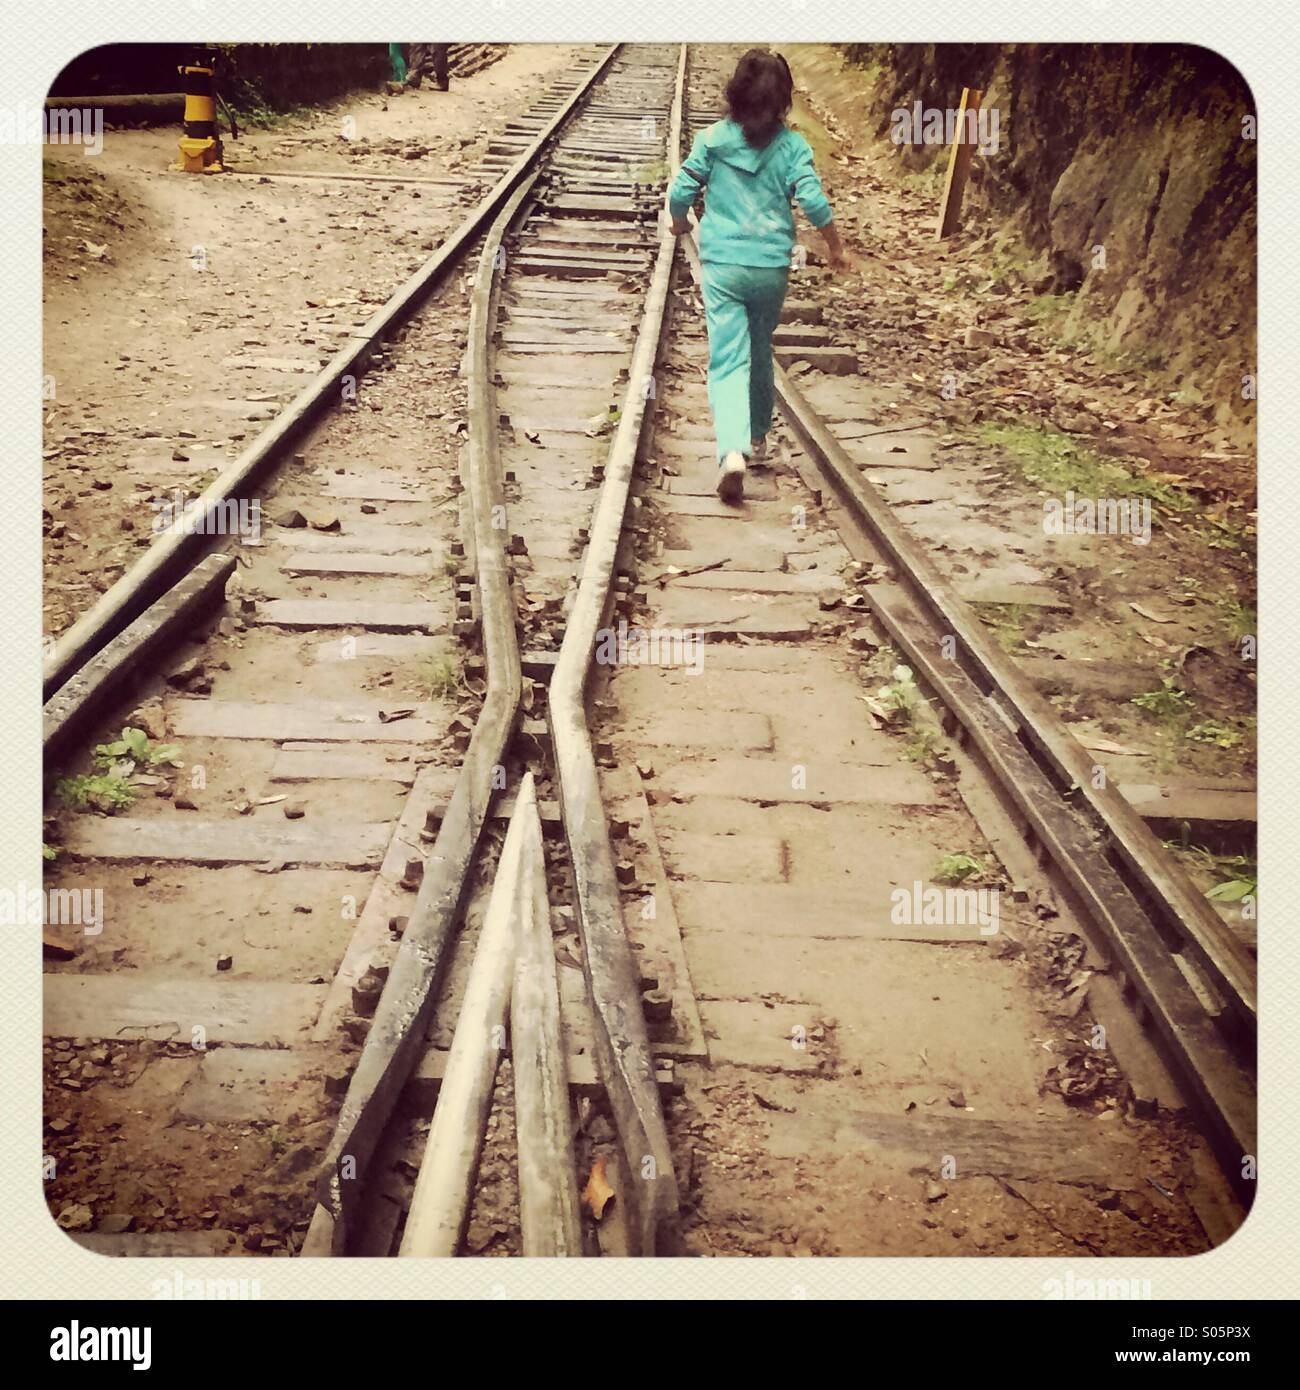 Girl walking on the train lines 2014 - Stock Image